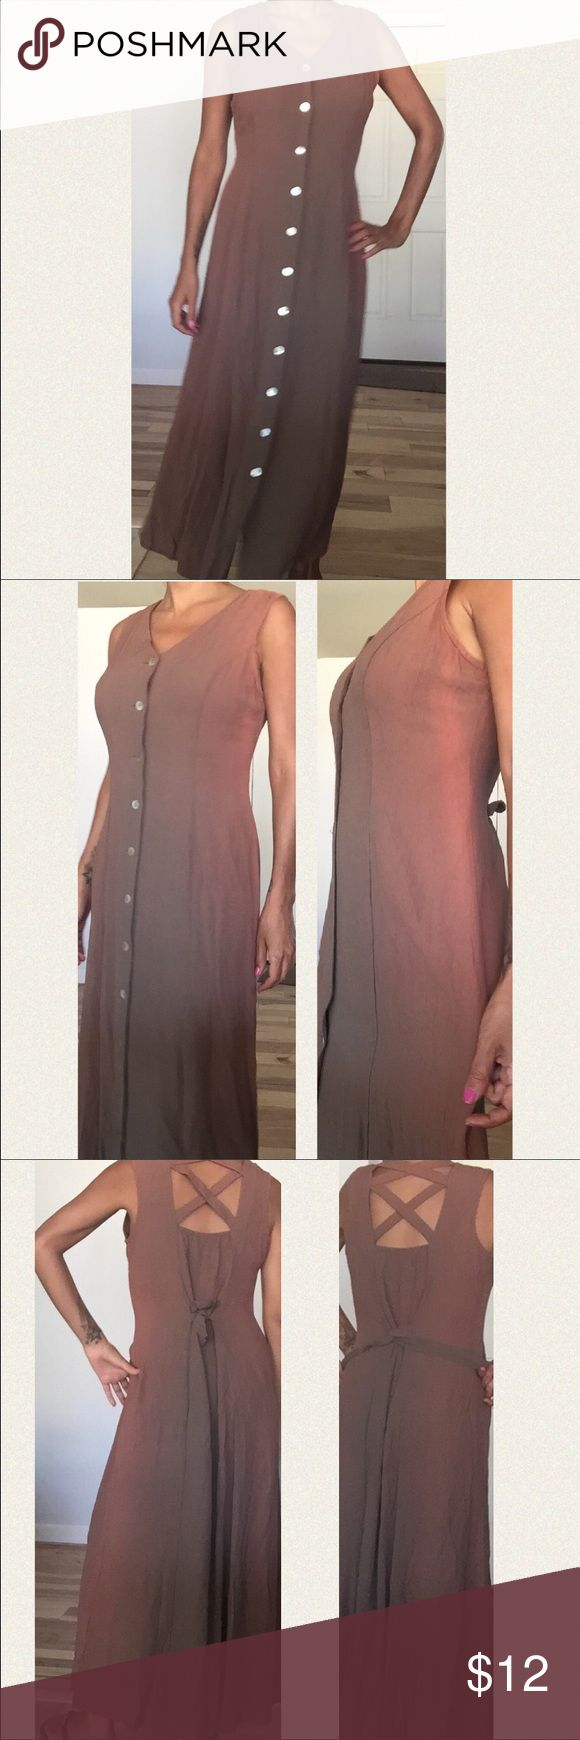 Long pretty dress This pretty dress changes color in the light. It's brown with red hues. It has pretty buttons that go down the front and it ties in the back. Fits size small to medium Dresses Maxi